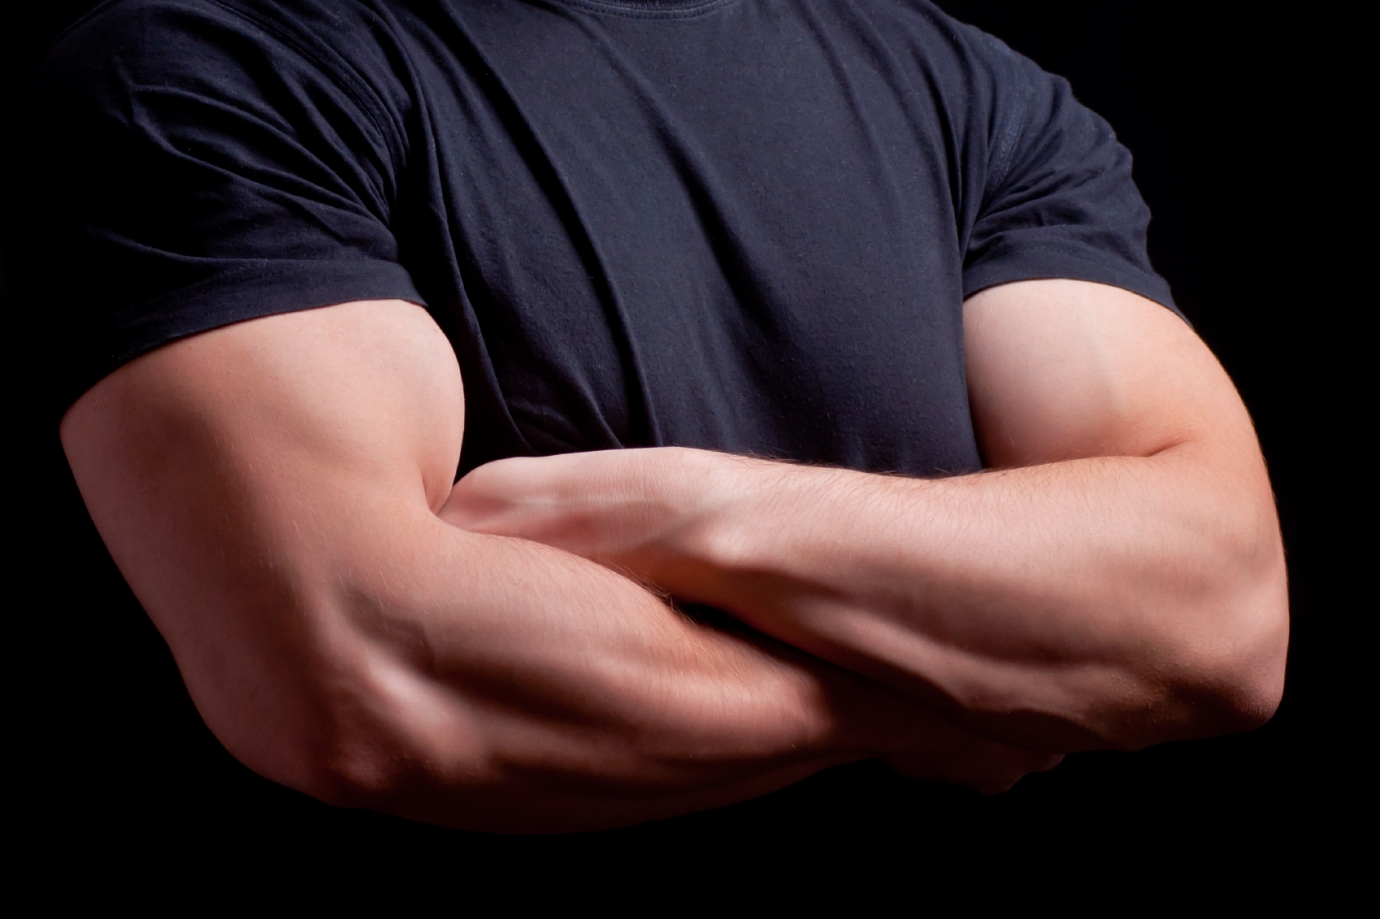 Male security guard with strong arms crossed in a dark background